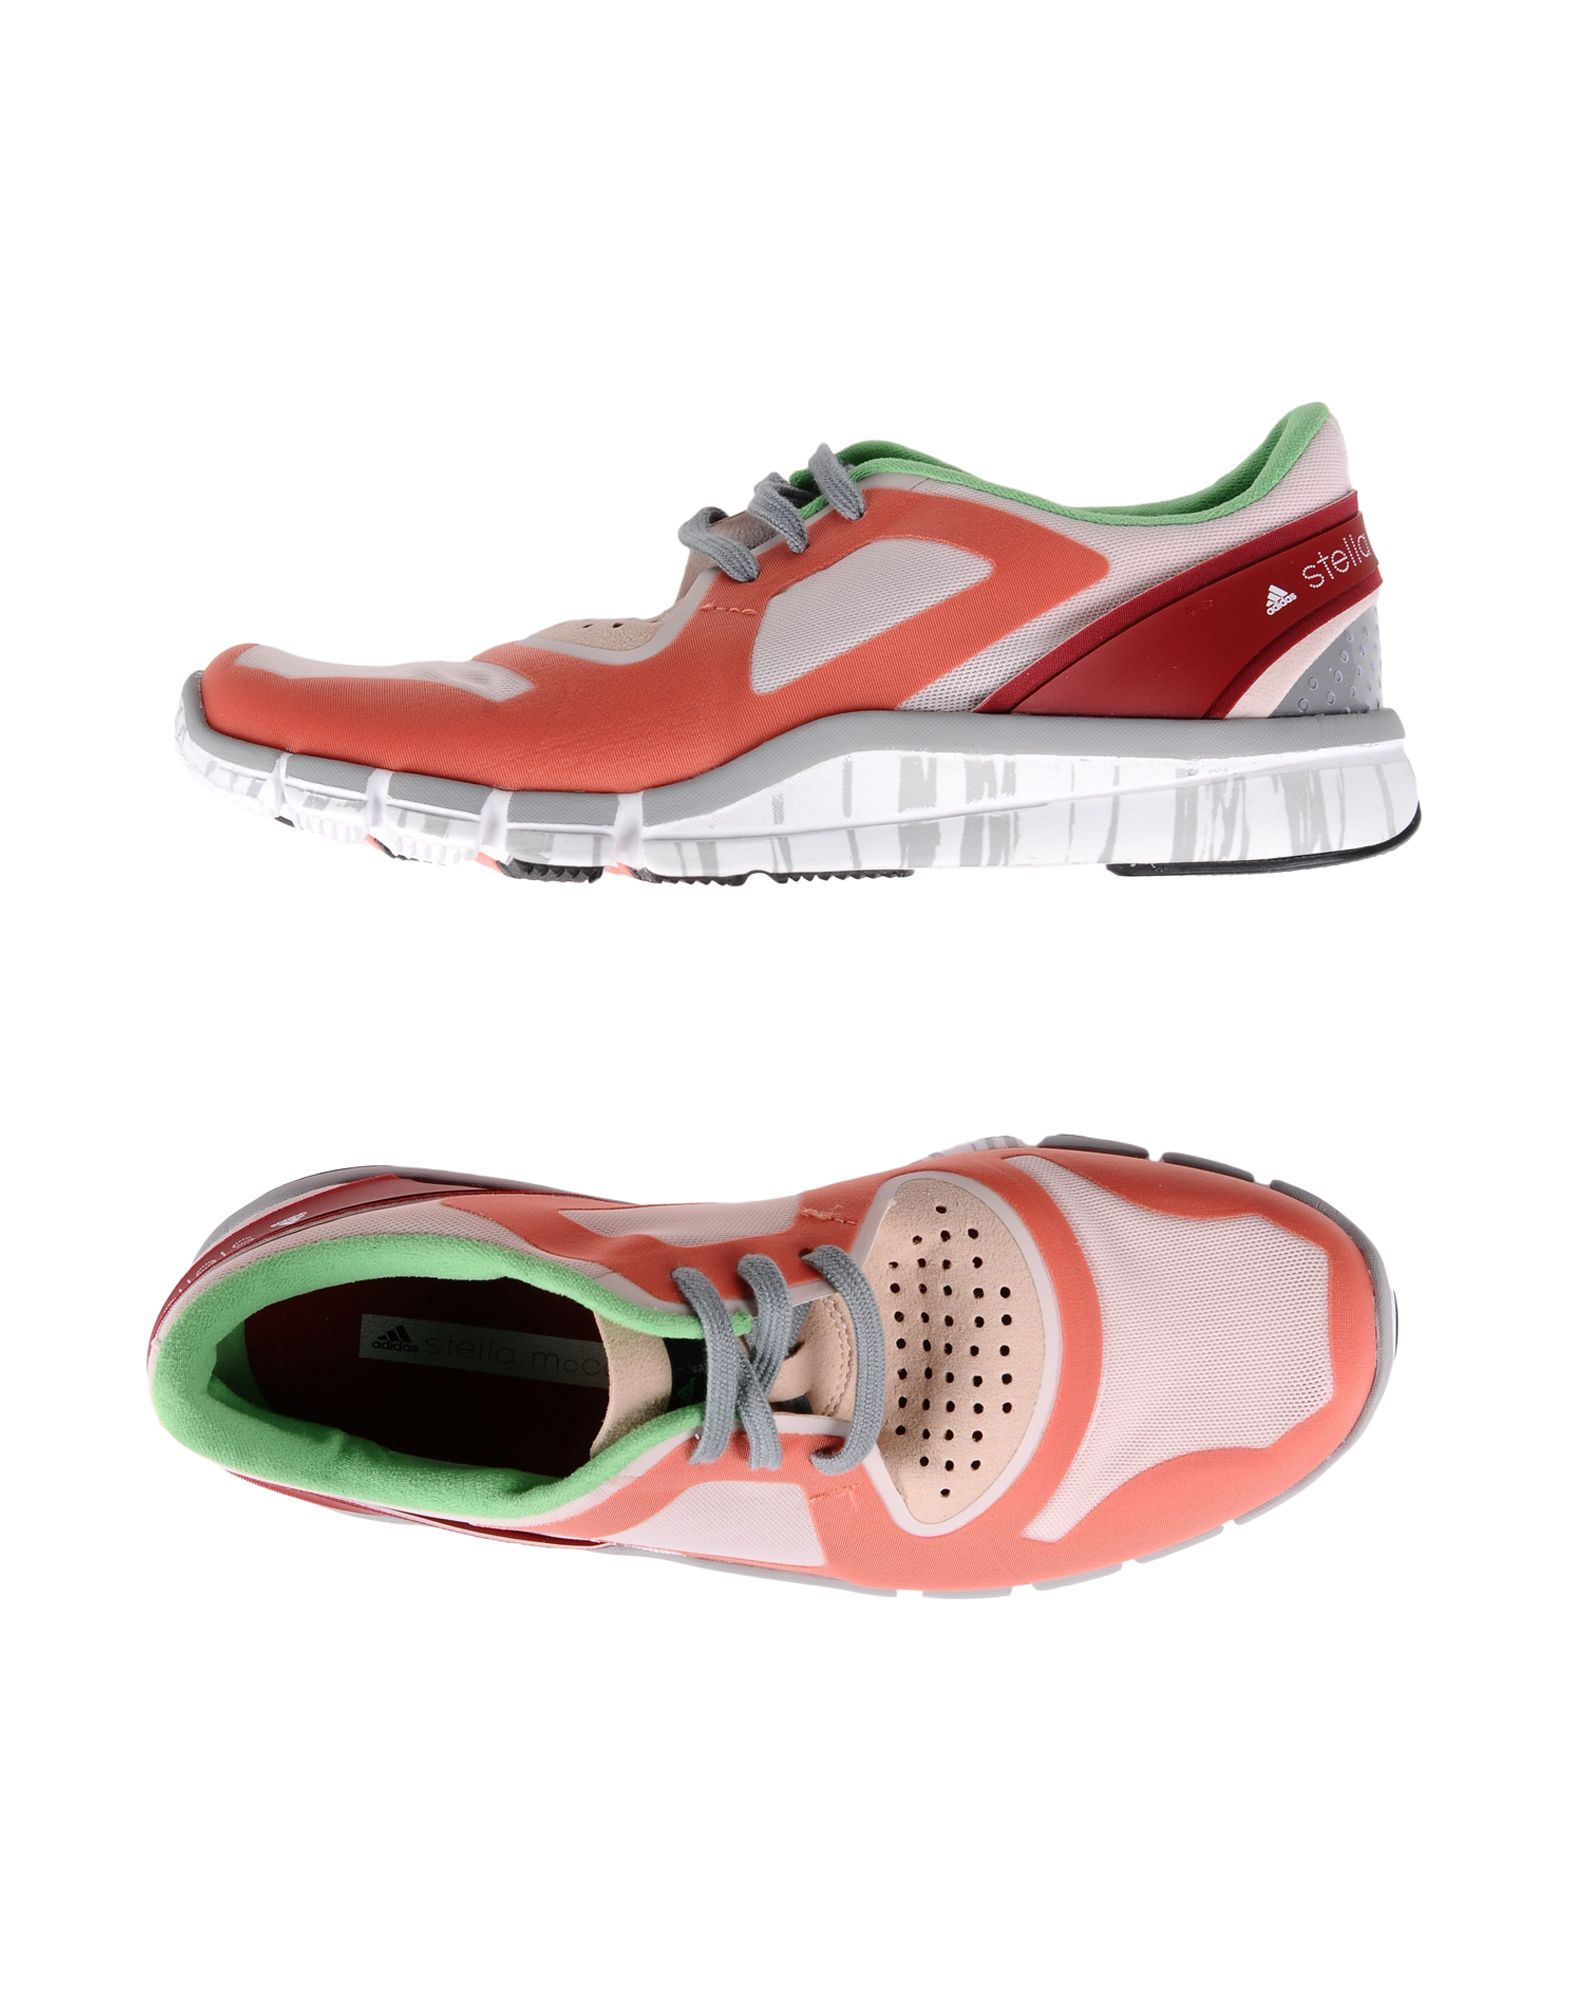 cc6a107118 Adidas By Stella Mccartney Adipure - Sneakers - Women Adidas By ...